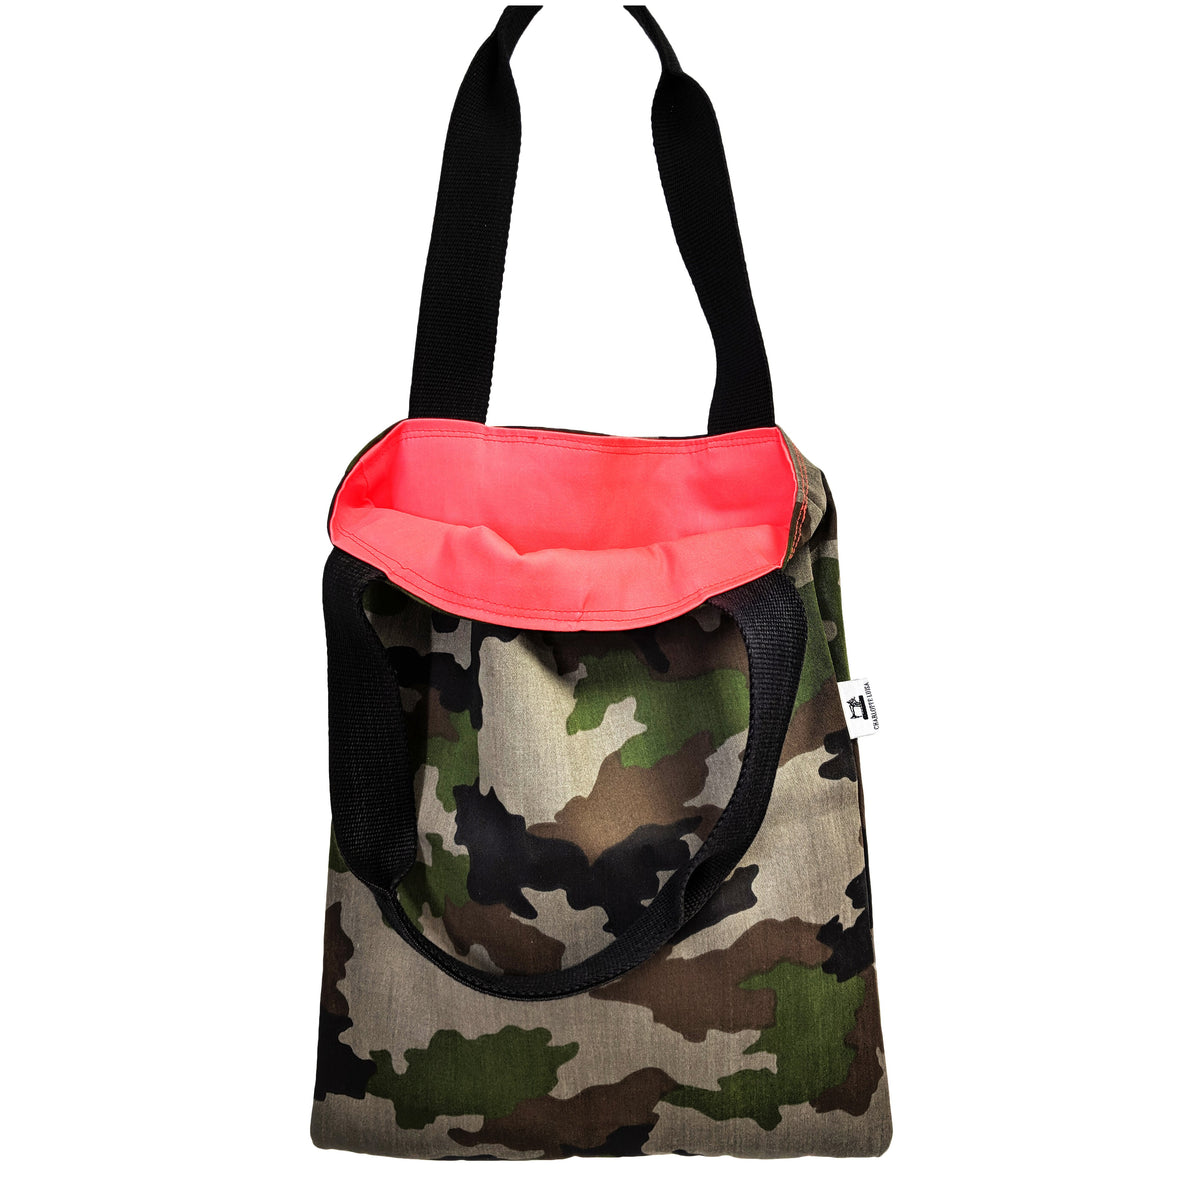 camouflage tote bag reusable shopper coral lining